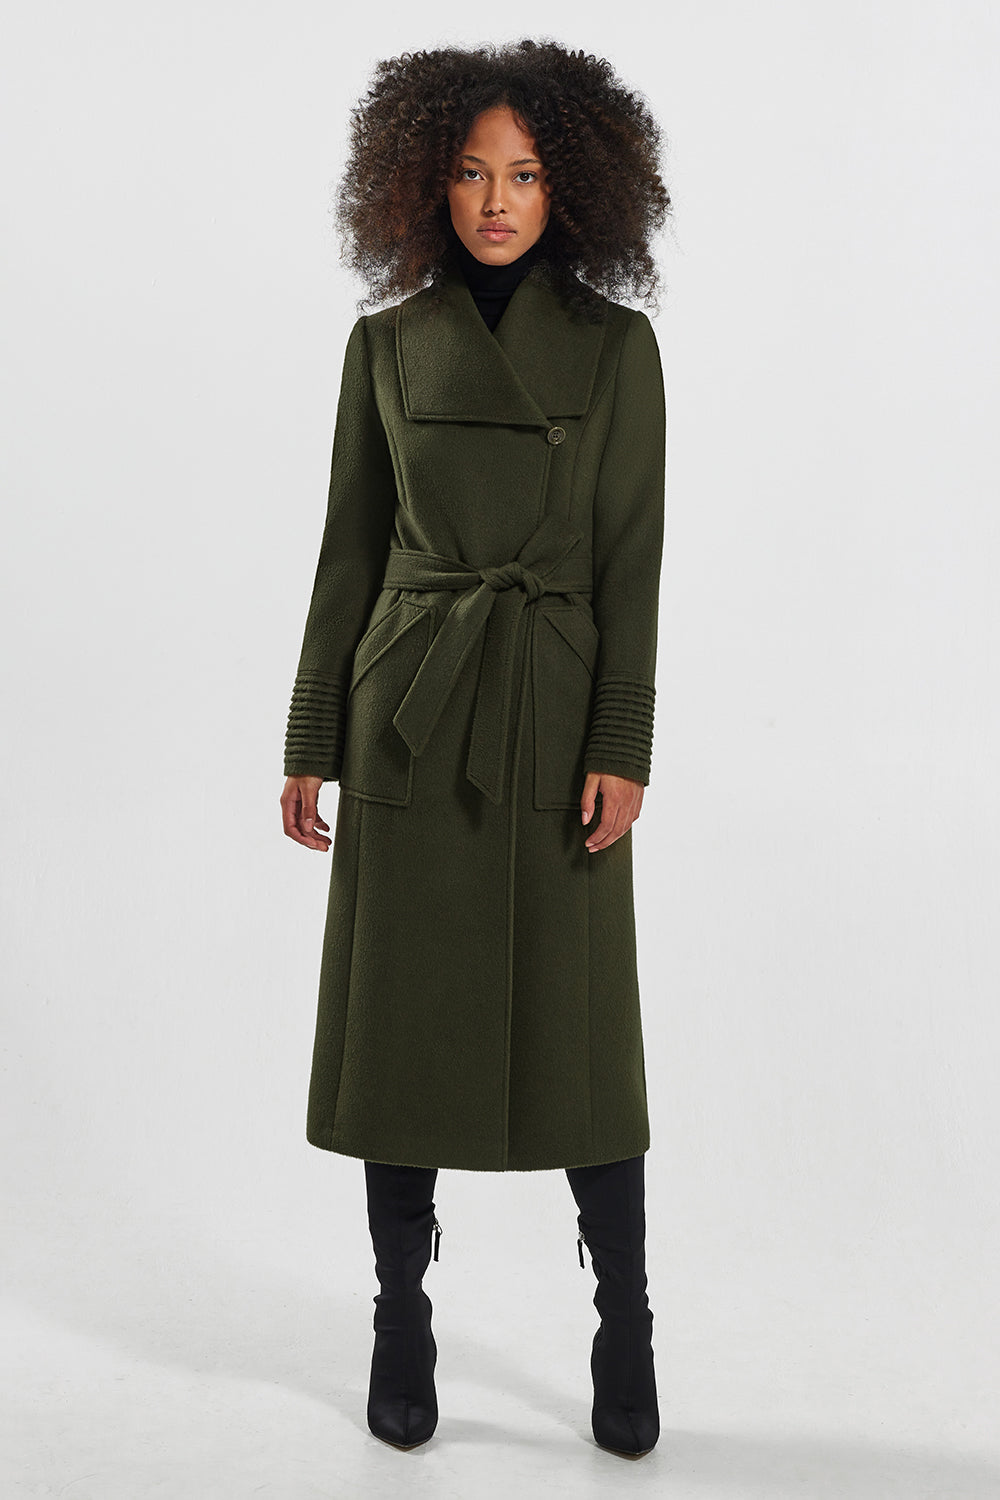 Sentaler Long Wide Collar Wrap Coat featured in Baby Alpaca and available in Olive. Seen from side.